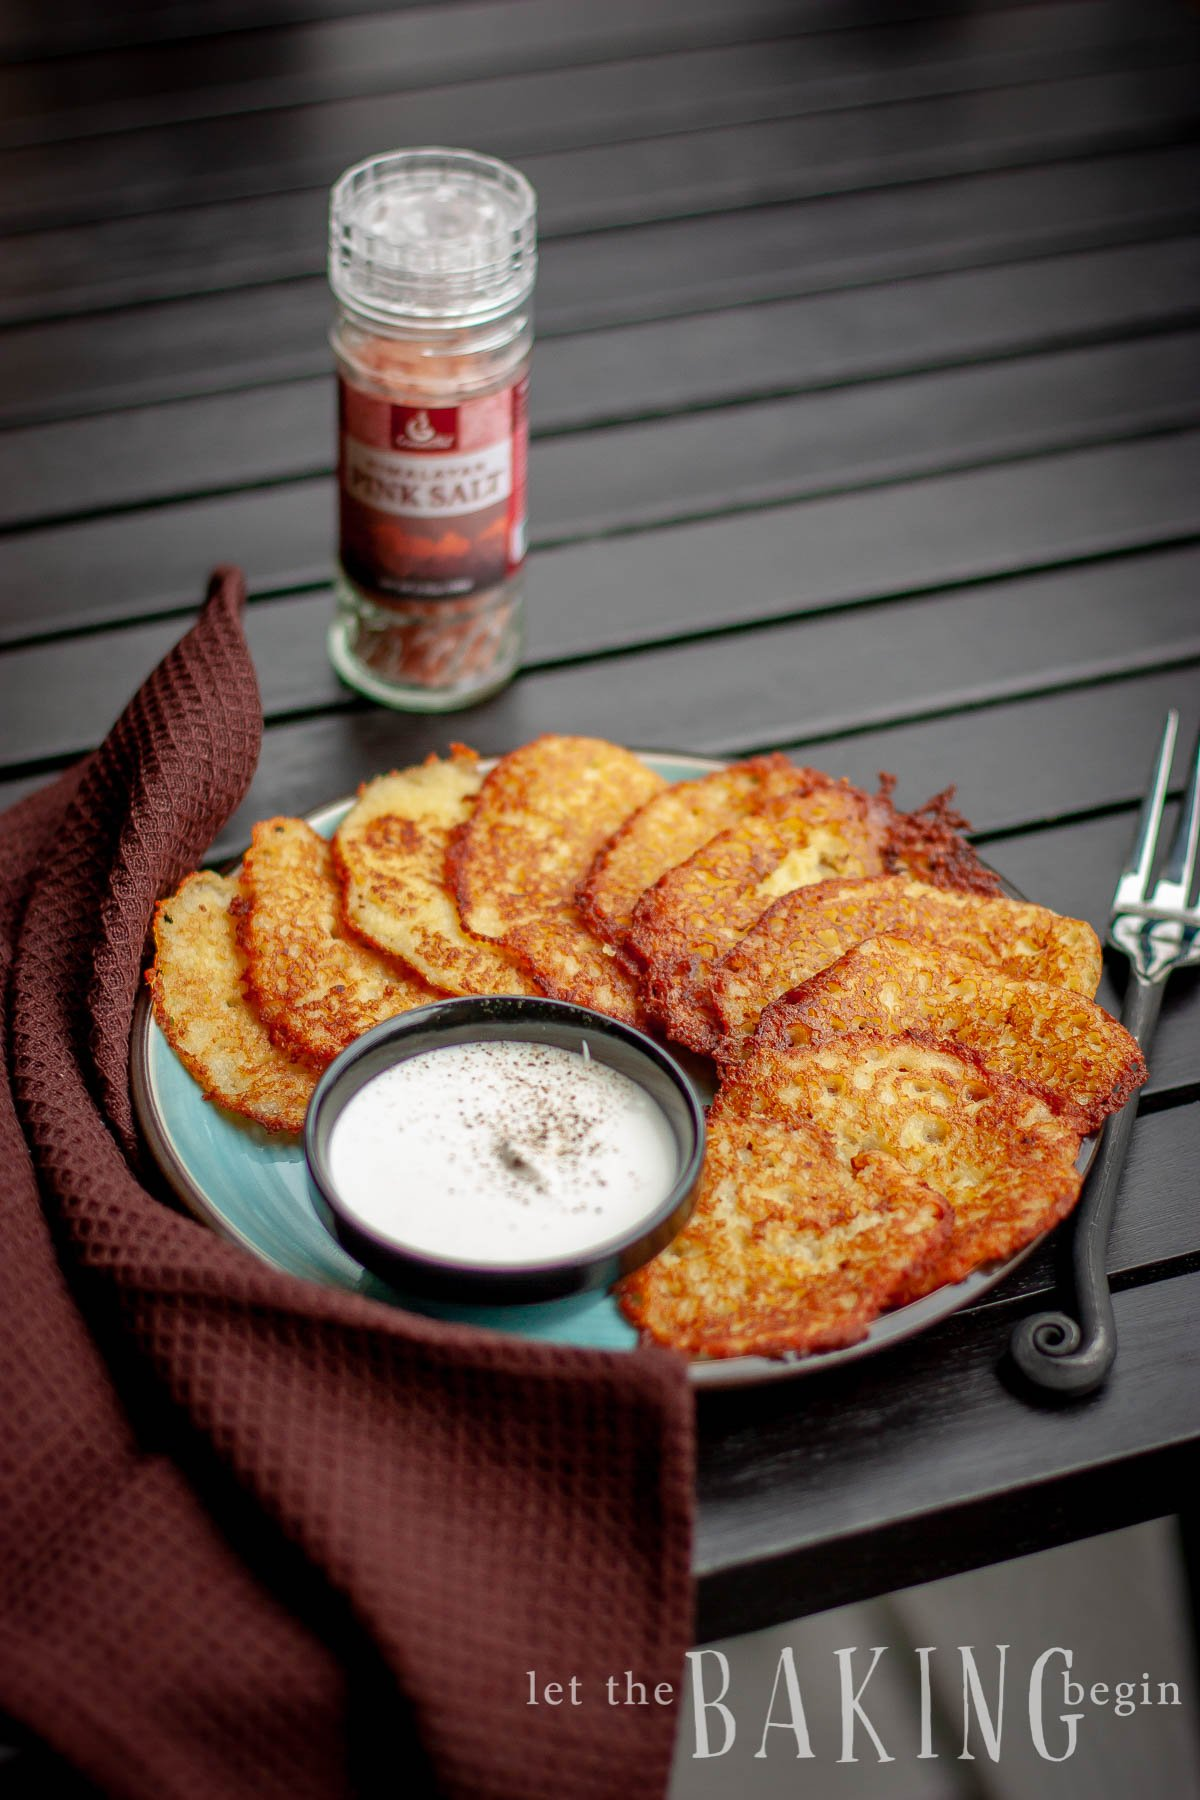 Potato Latkes or Draniki as Russians call them are pancakes made of finely shredded potatoes, egg, and some flour. They are delicious served with some sour cream or applesauce. Make sure to double the recipe, if you're making them for a family, that is if you want to get a taste too ;)